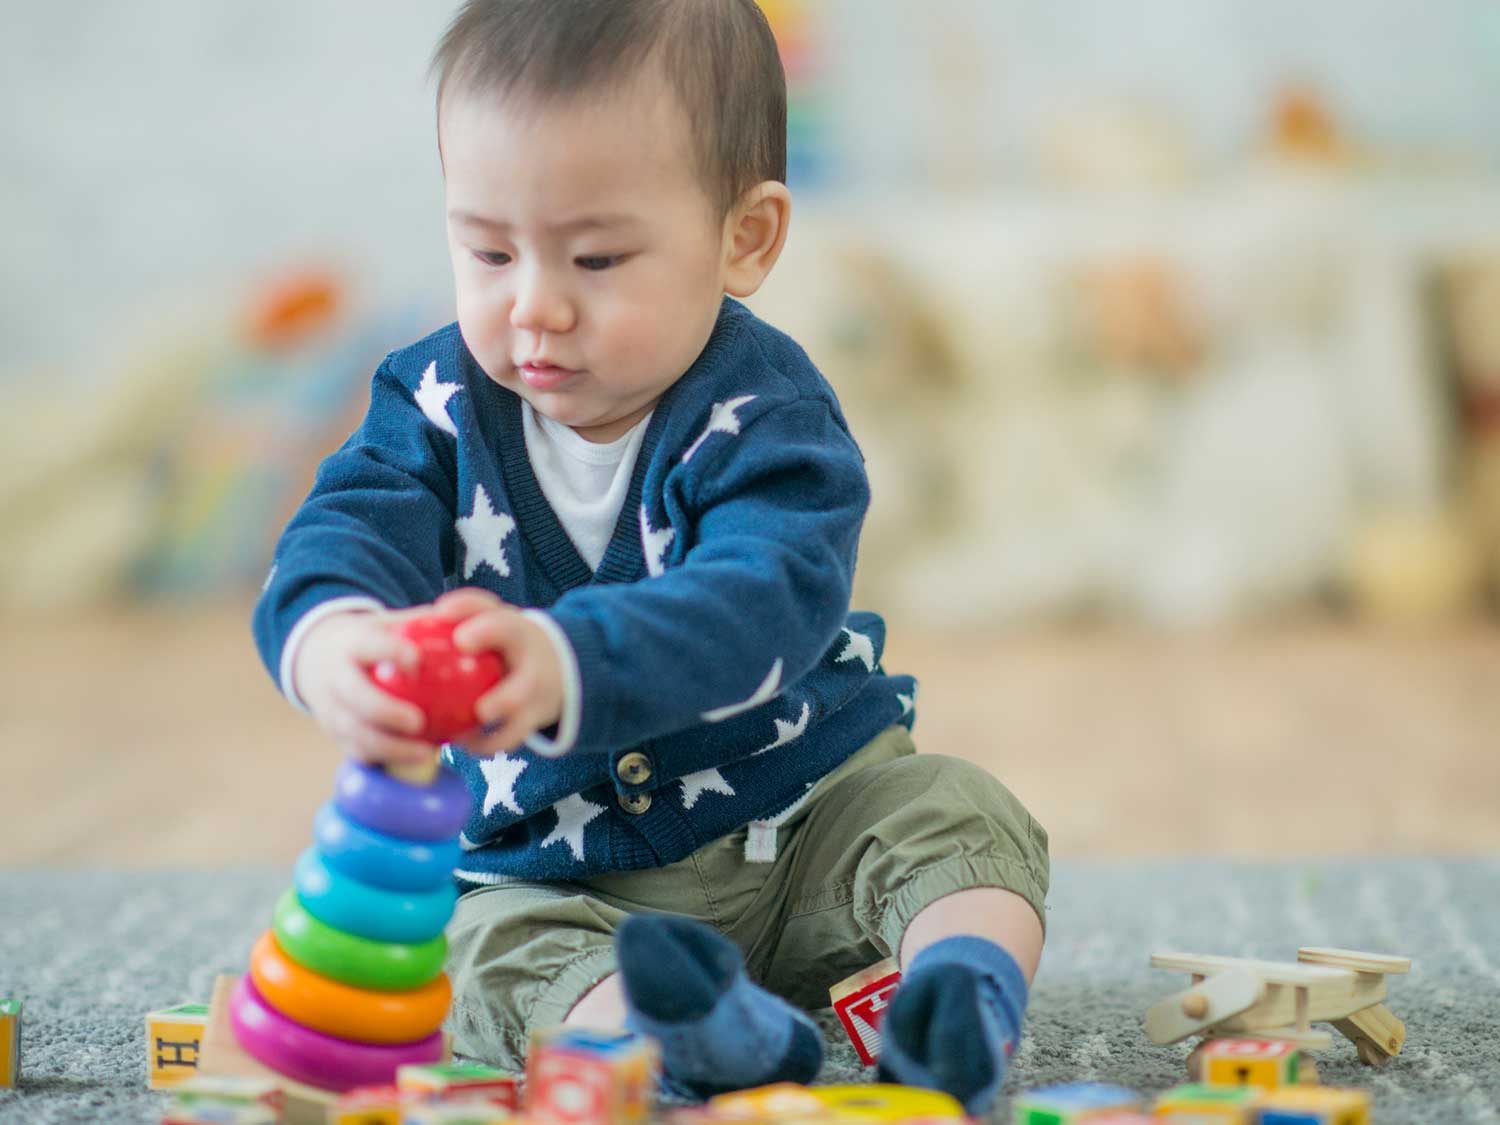 Introduction To Activities For 0-2 Year Olds